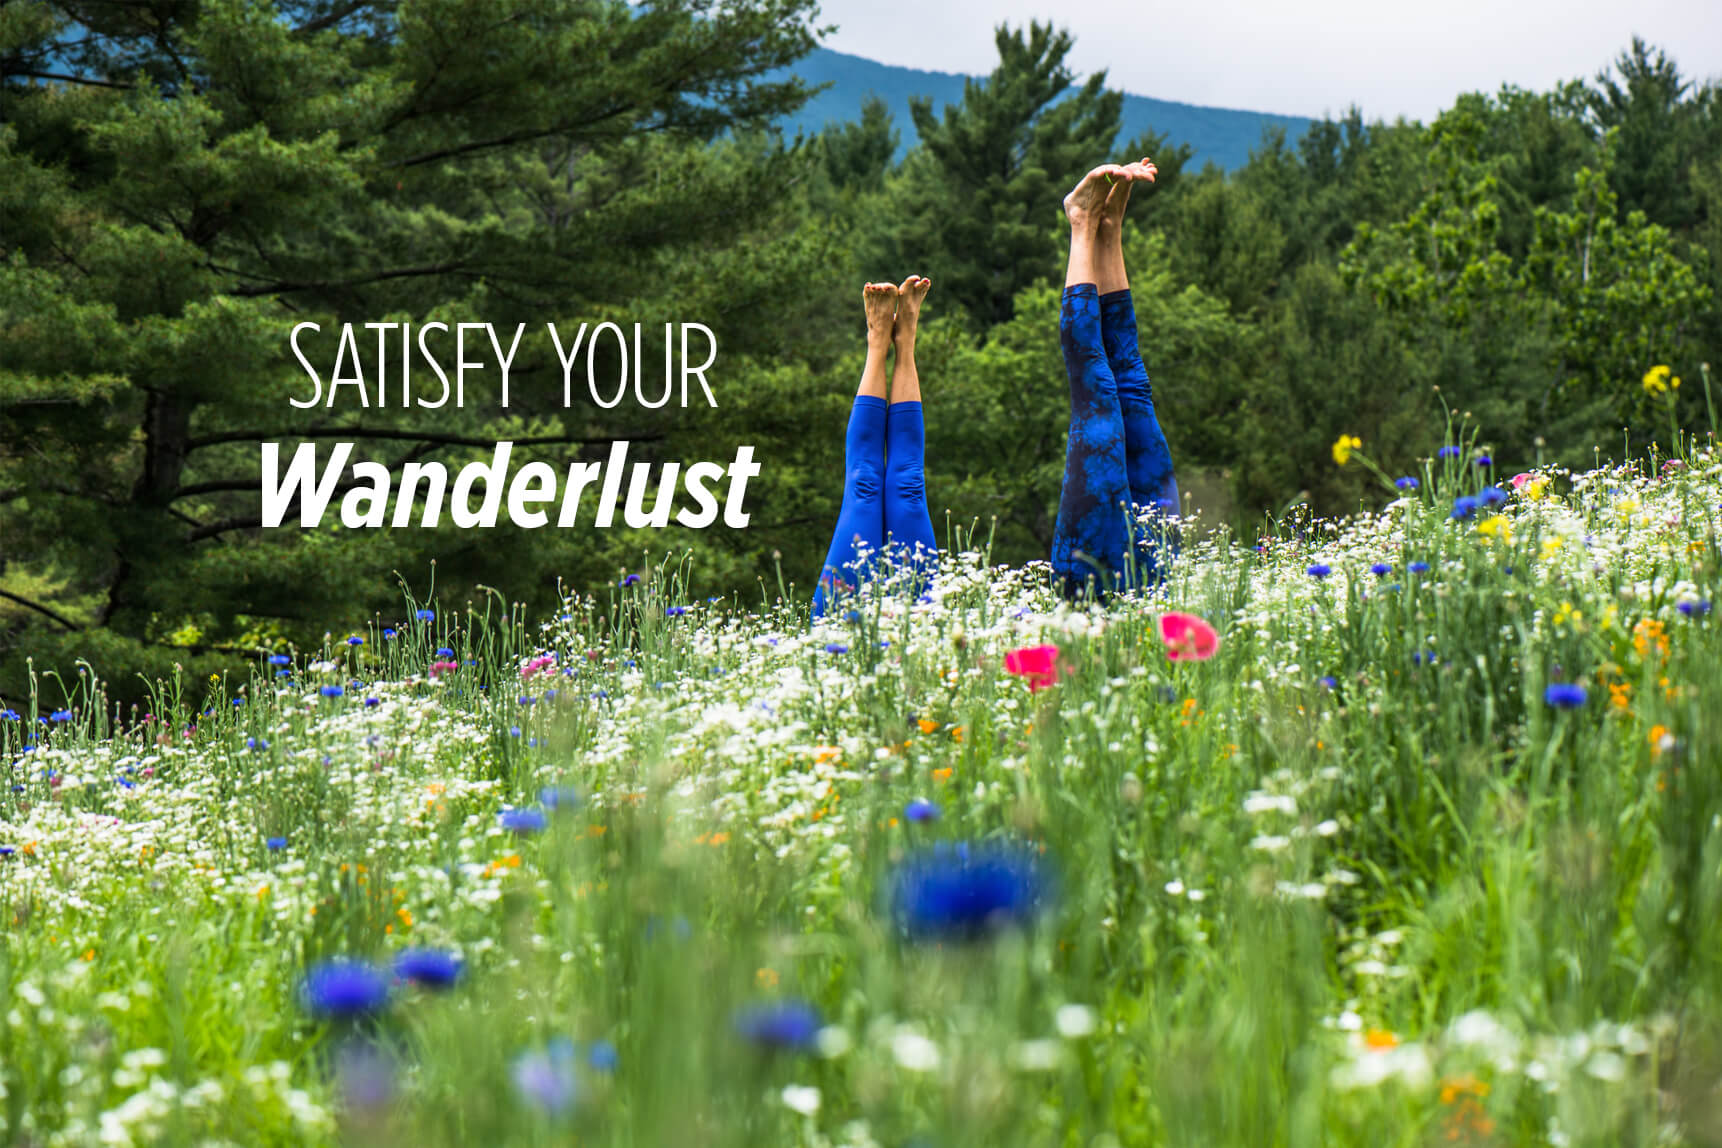 Satisfy Your Wanderlust